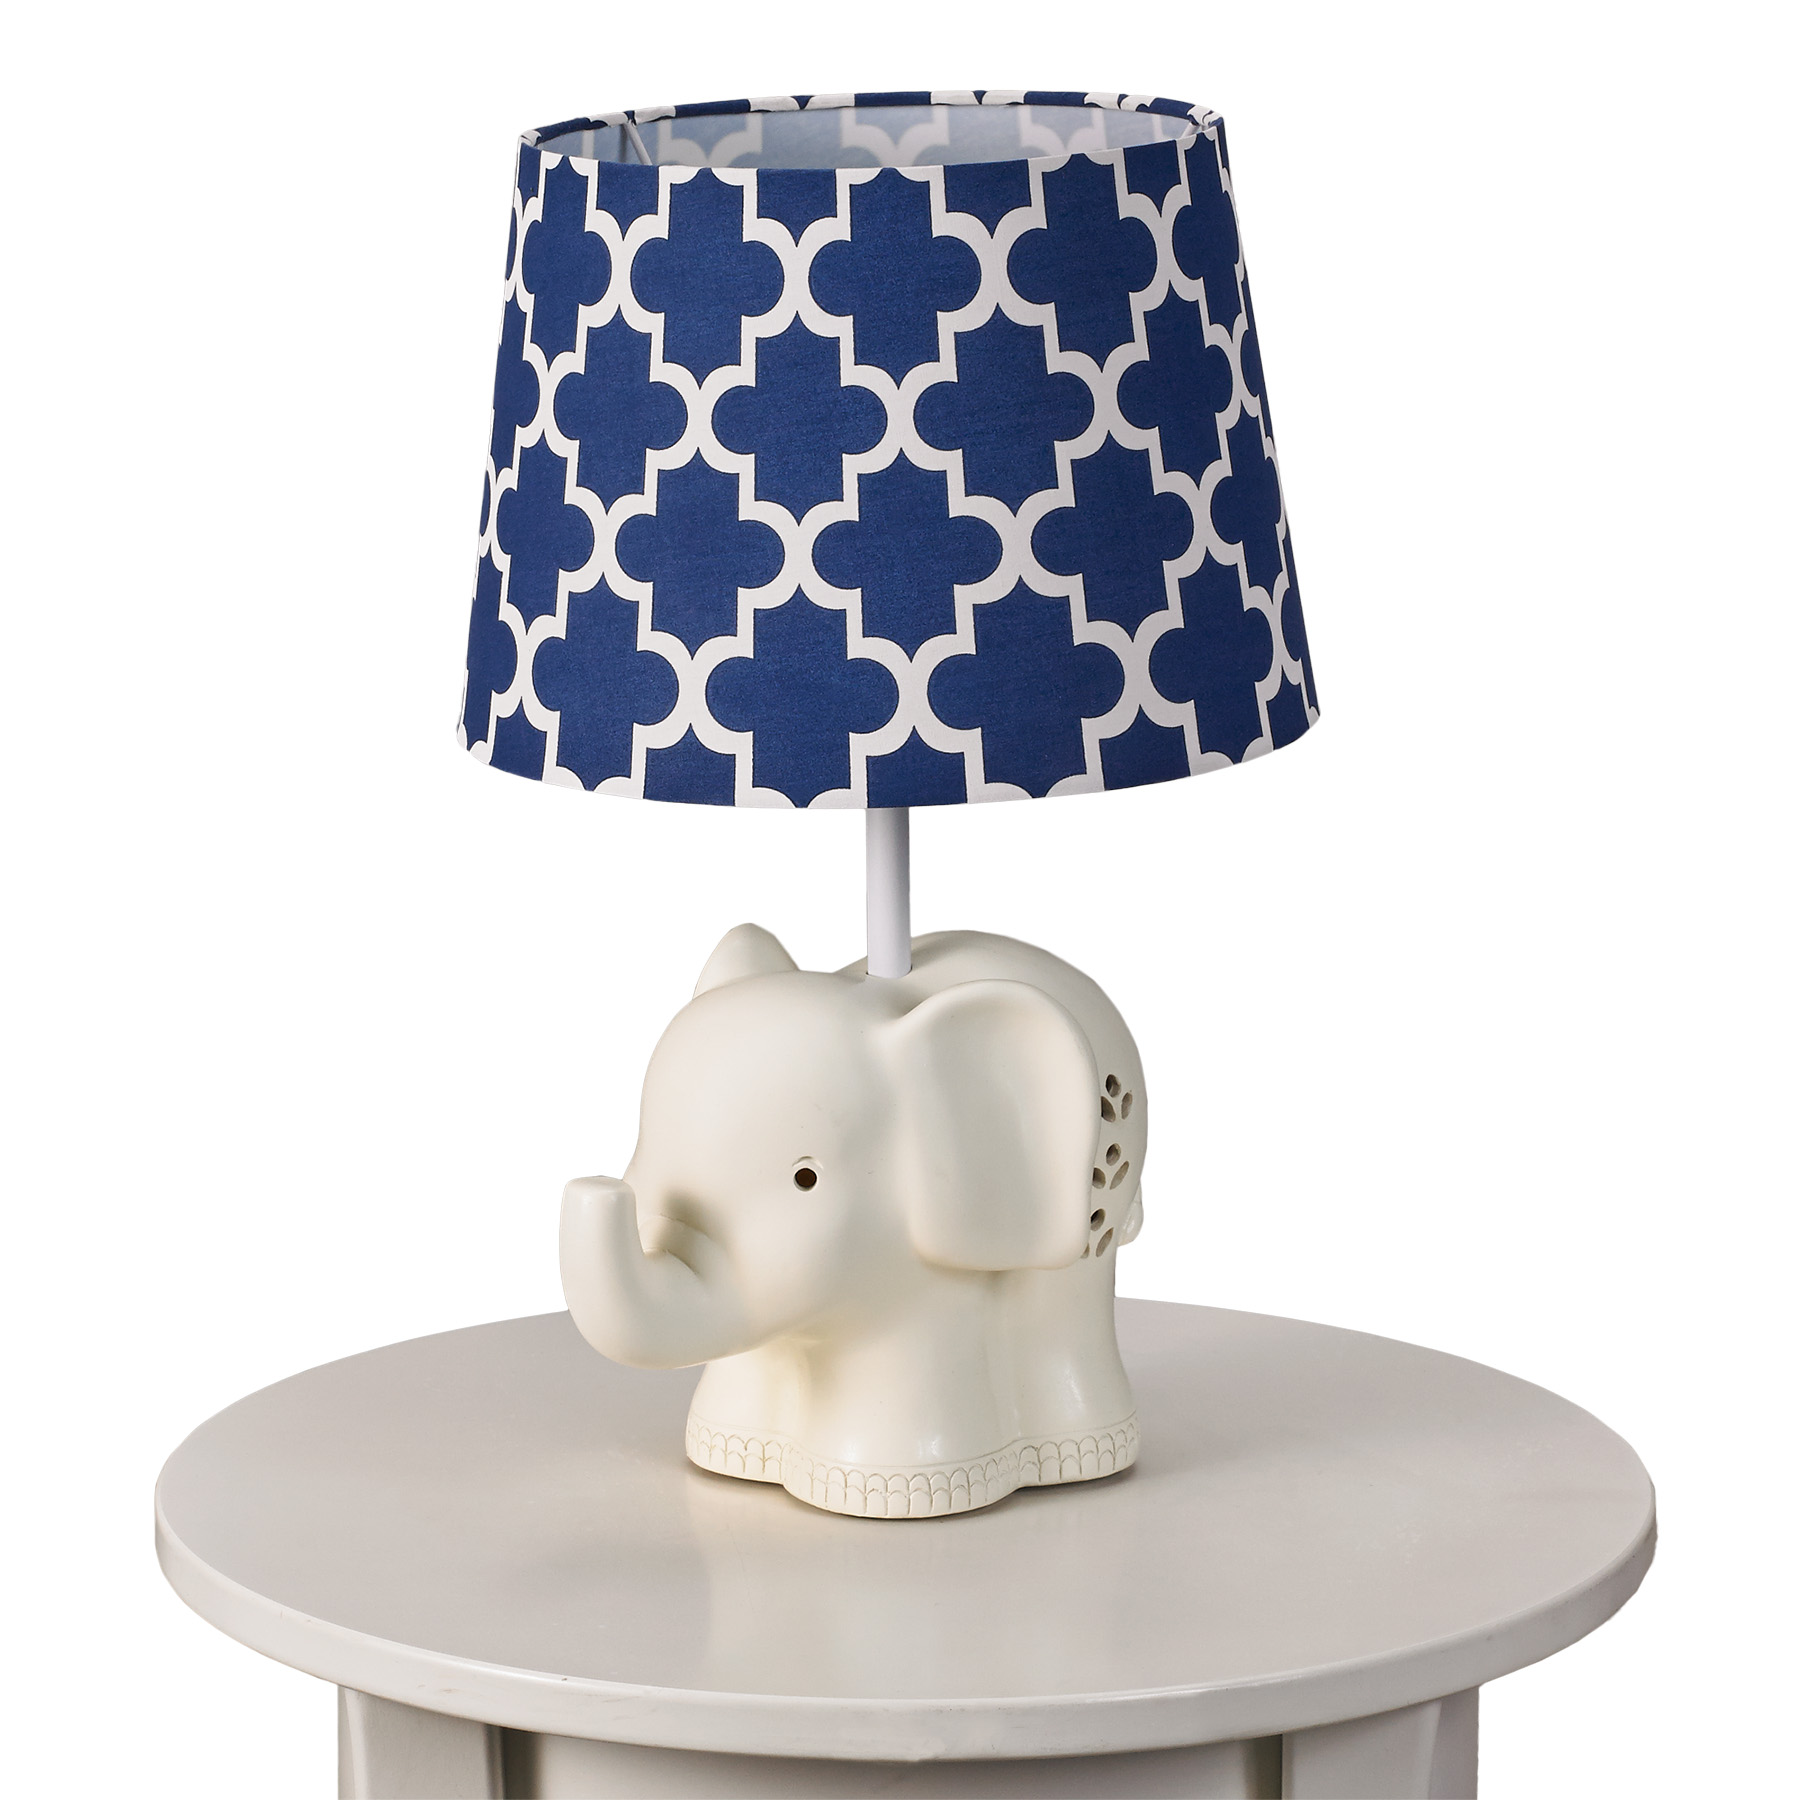 Animal Lamp For Nursery Baby Nursery Lighting Baby Nursery Lamp Lighting For Baby Lamp